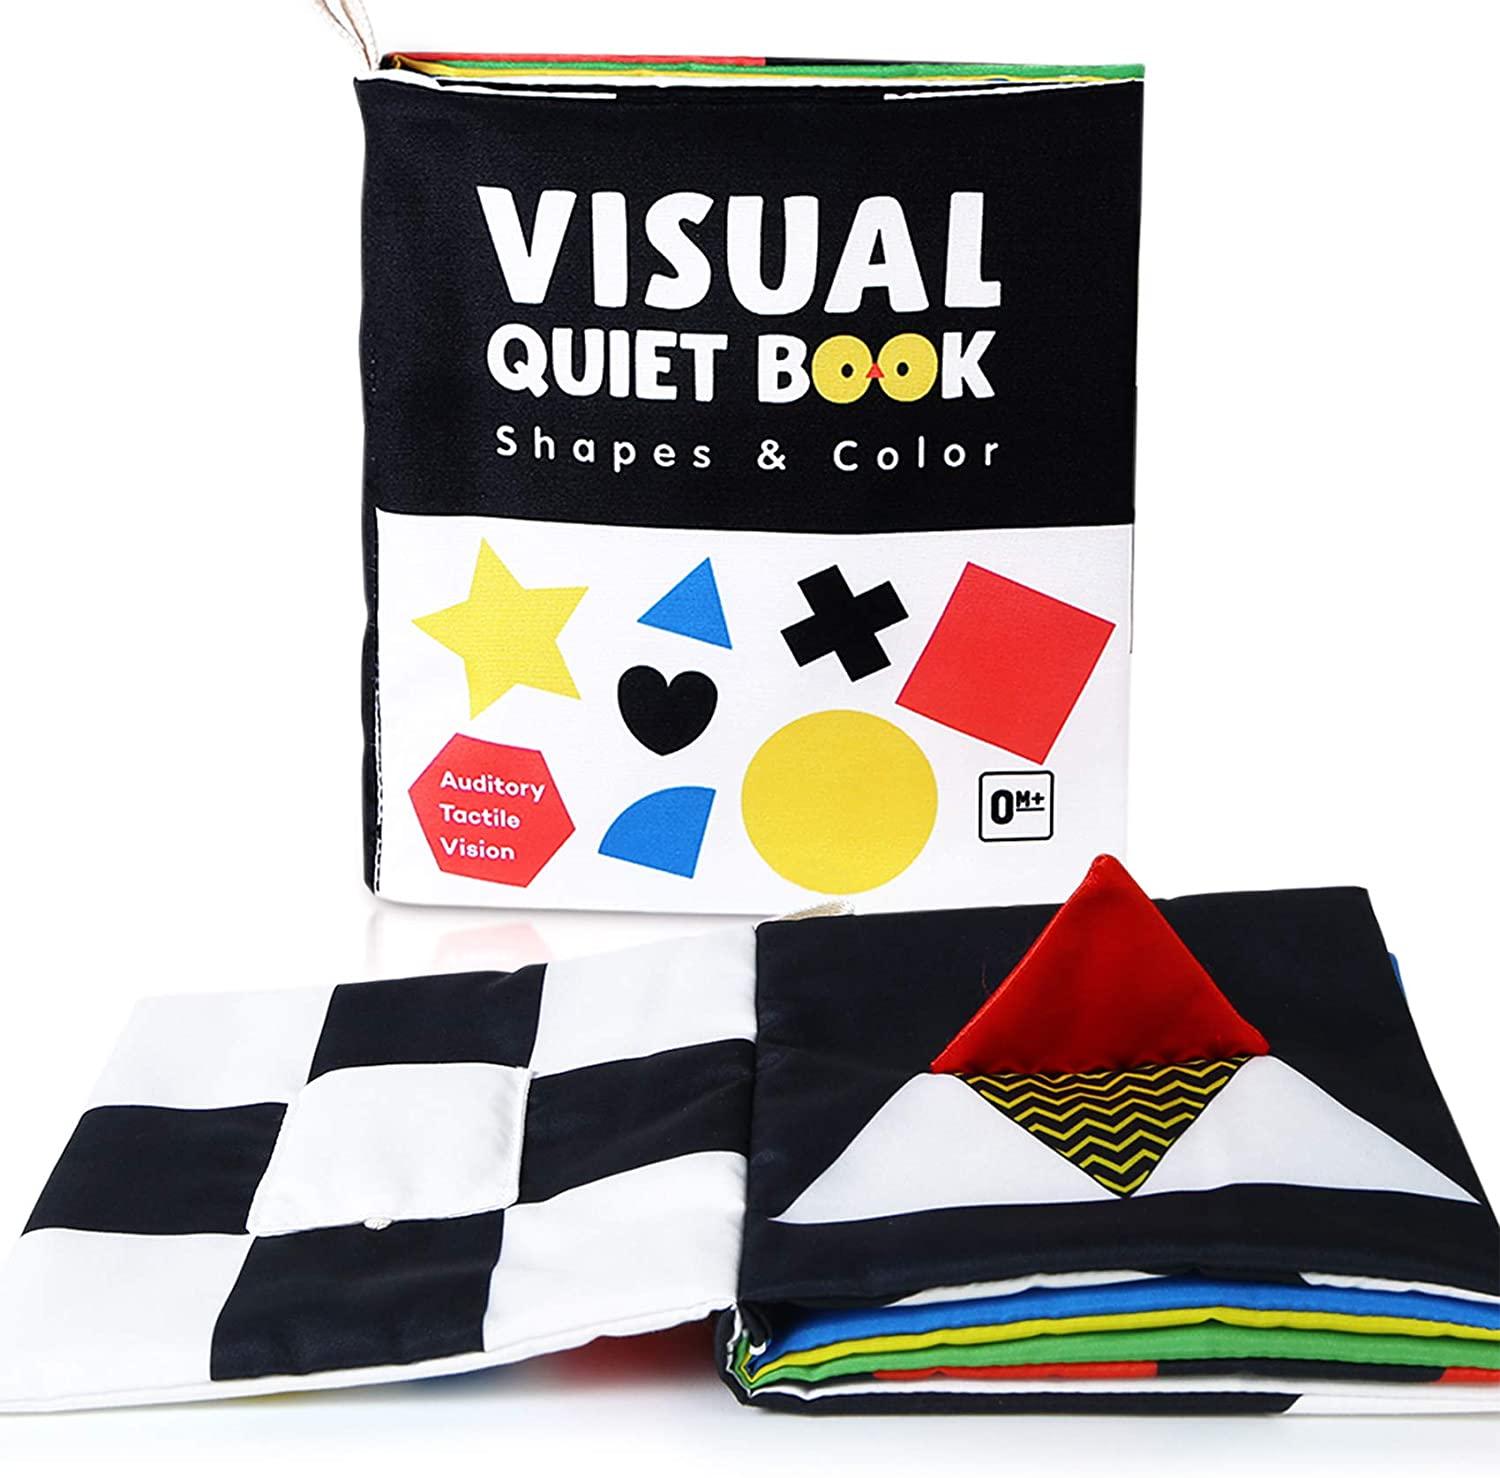 Soft Baby Books, High Contrast Black and White Books Non Toxic Fabric Touch and Feel Crinkle Cloth Books Early Educational Stimulation Toys for Infants Toddlers, Baby Gift Stroller Toys